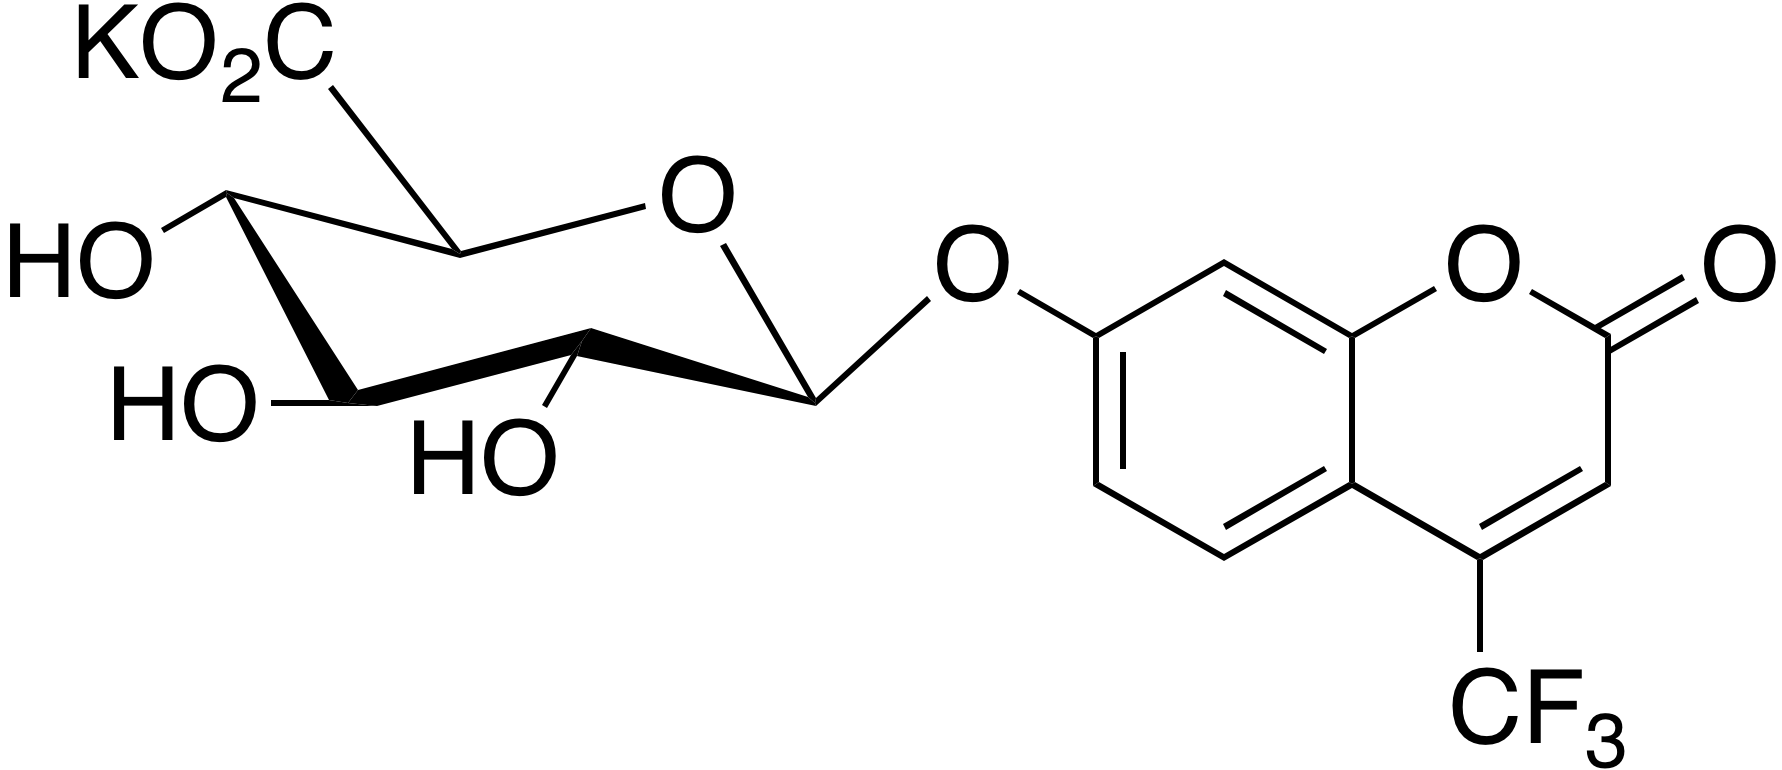 4-Trifluoromethyl-7-hydroxycoumarin glucuronide potassium